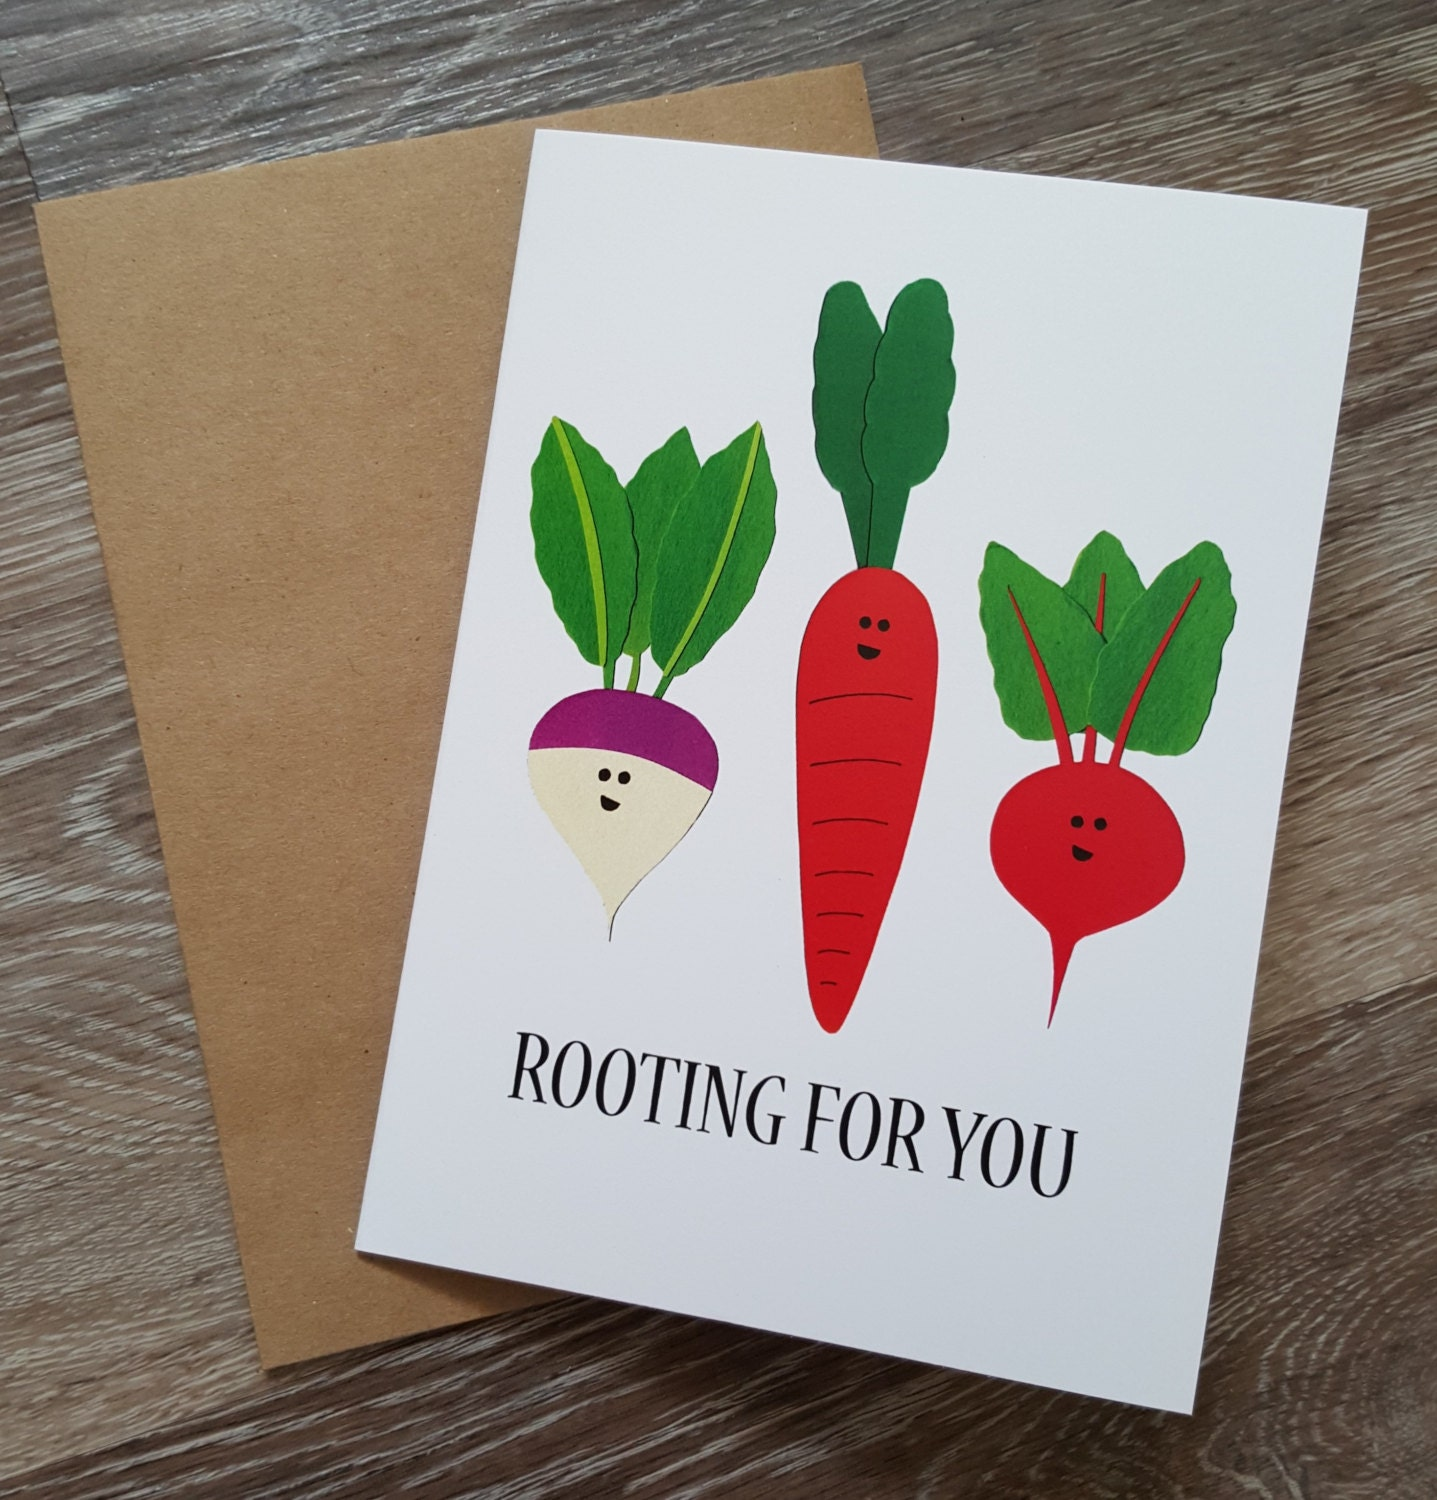 Words of encouragement encouragement cards pun card food zoom kristyandbryce Image collections